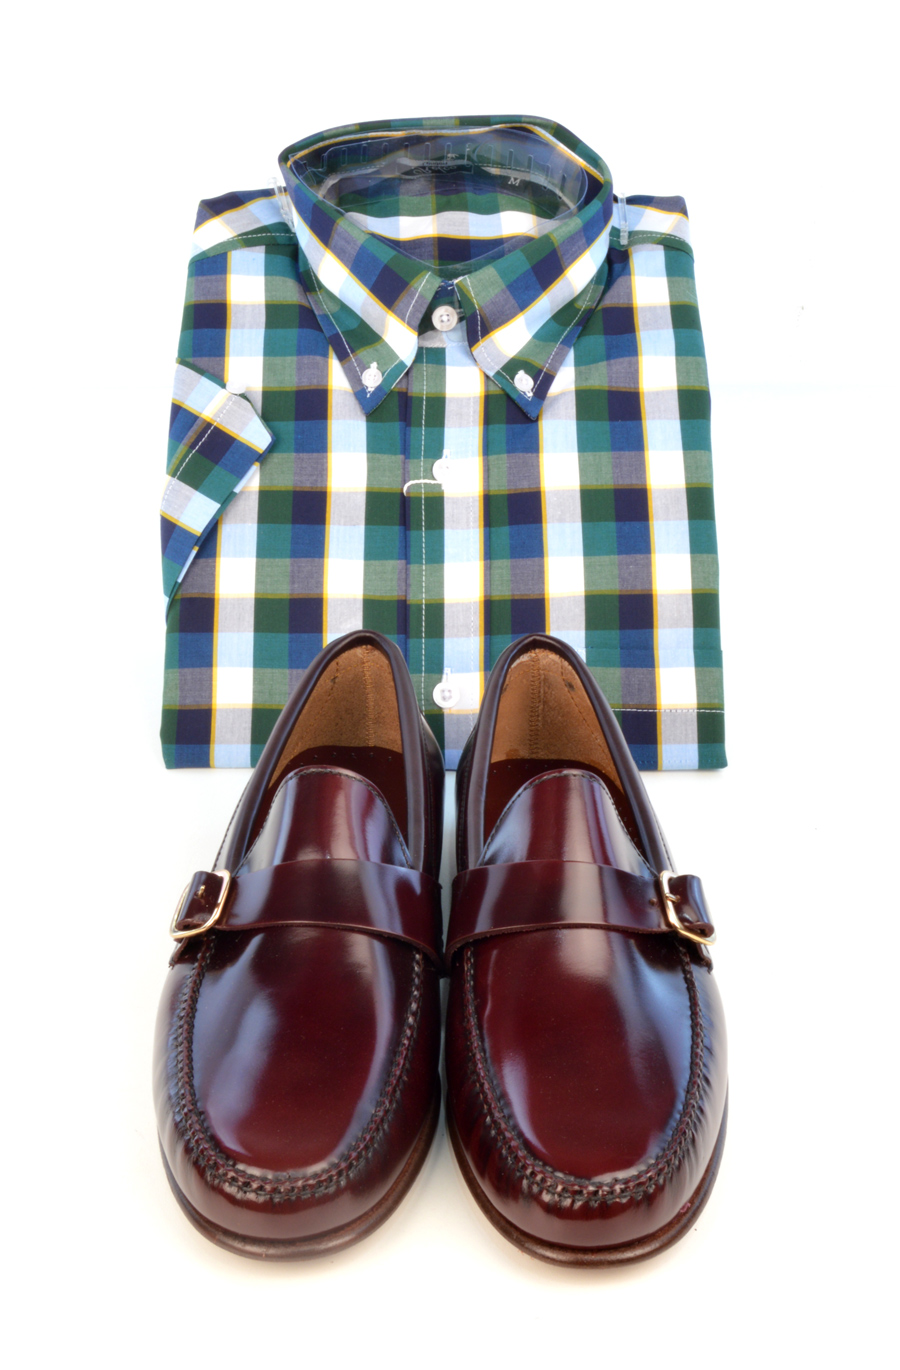 modshoes-oxblood-buckle-loafers-with-check-shirt